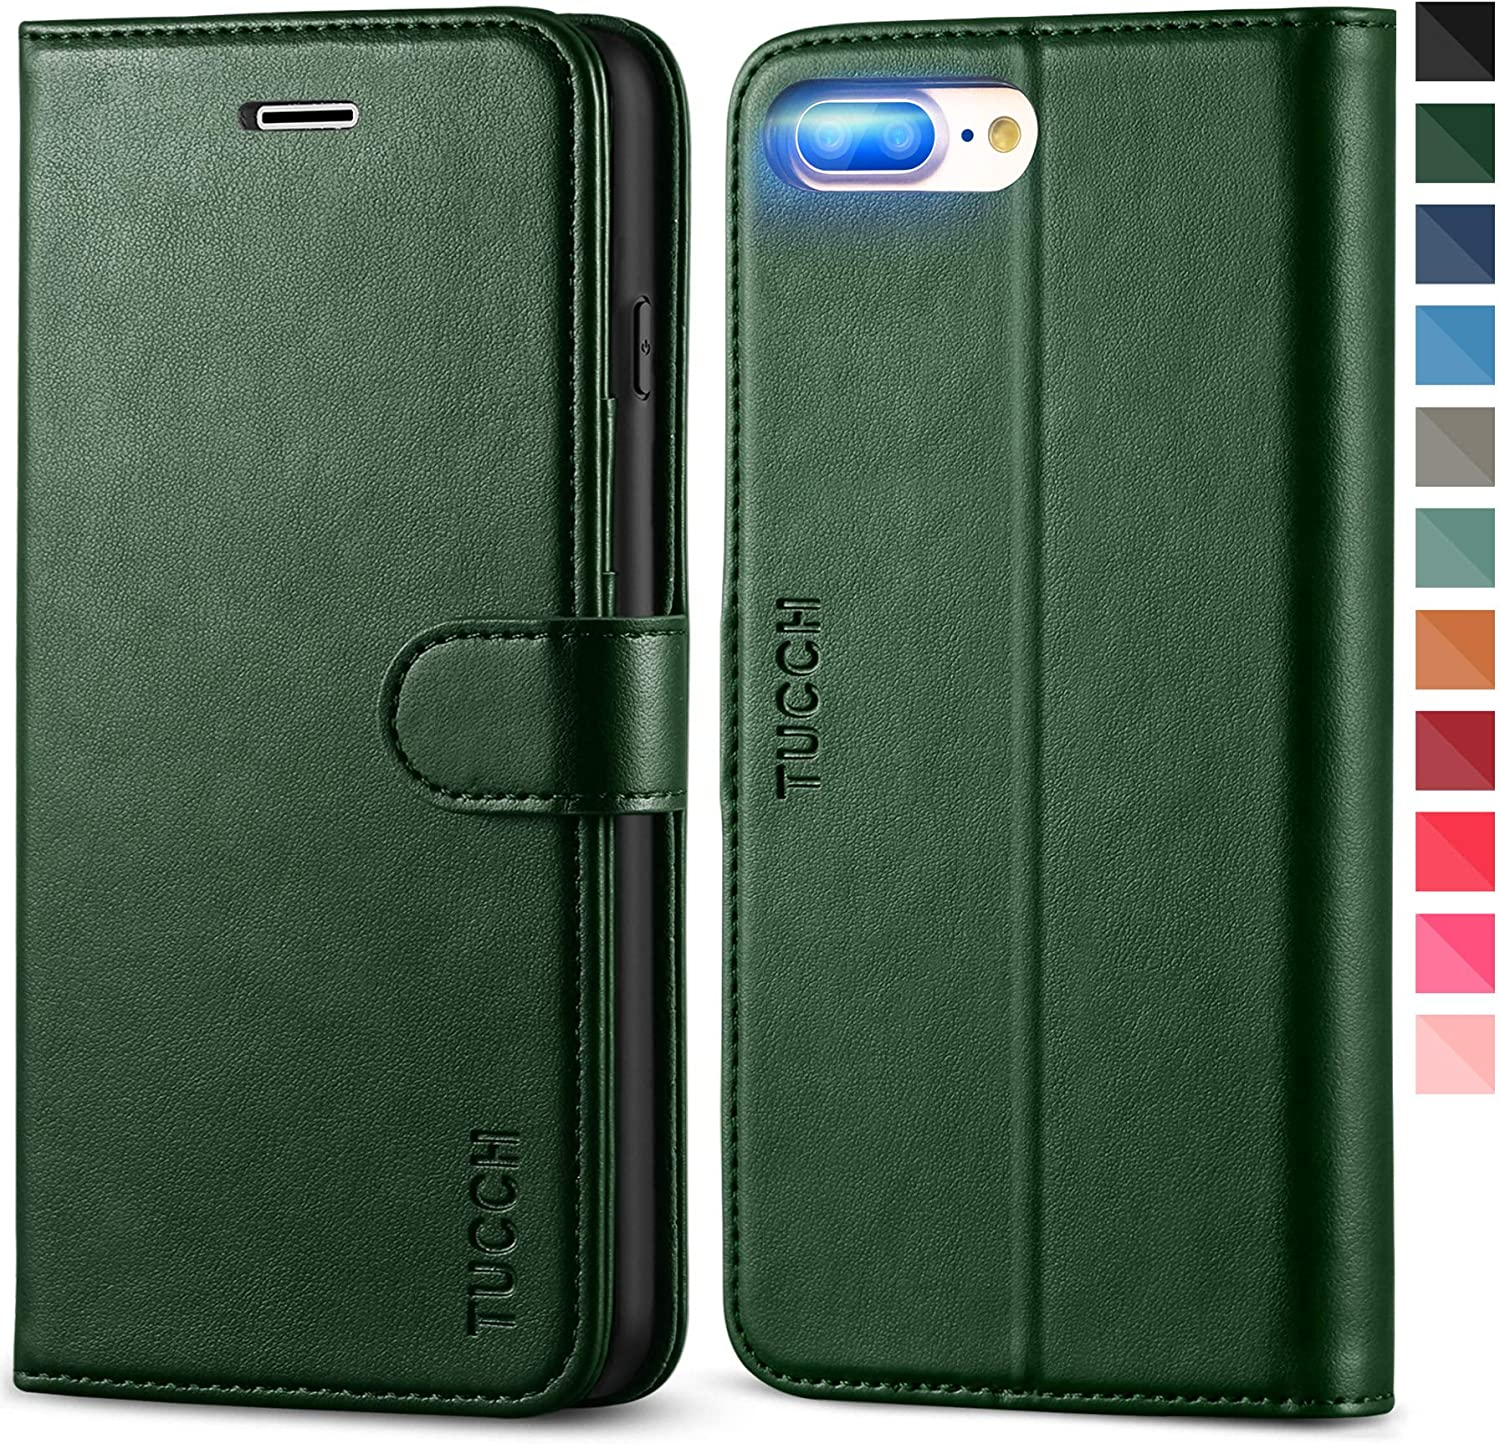 TUCCH iPhone 8 Plus Wallet Case, iPhone 7 Plus PU Leather Case, Folio Kickstand Cover with Card Slot Magnetic Flip Protective TPU Interior Case Compatible with iPhone 8 Plus/7 Plus, Midnight Green